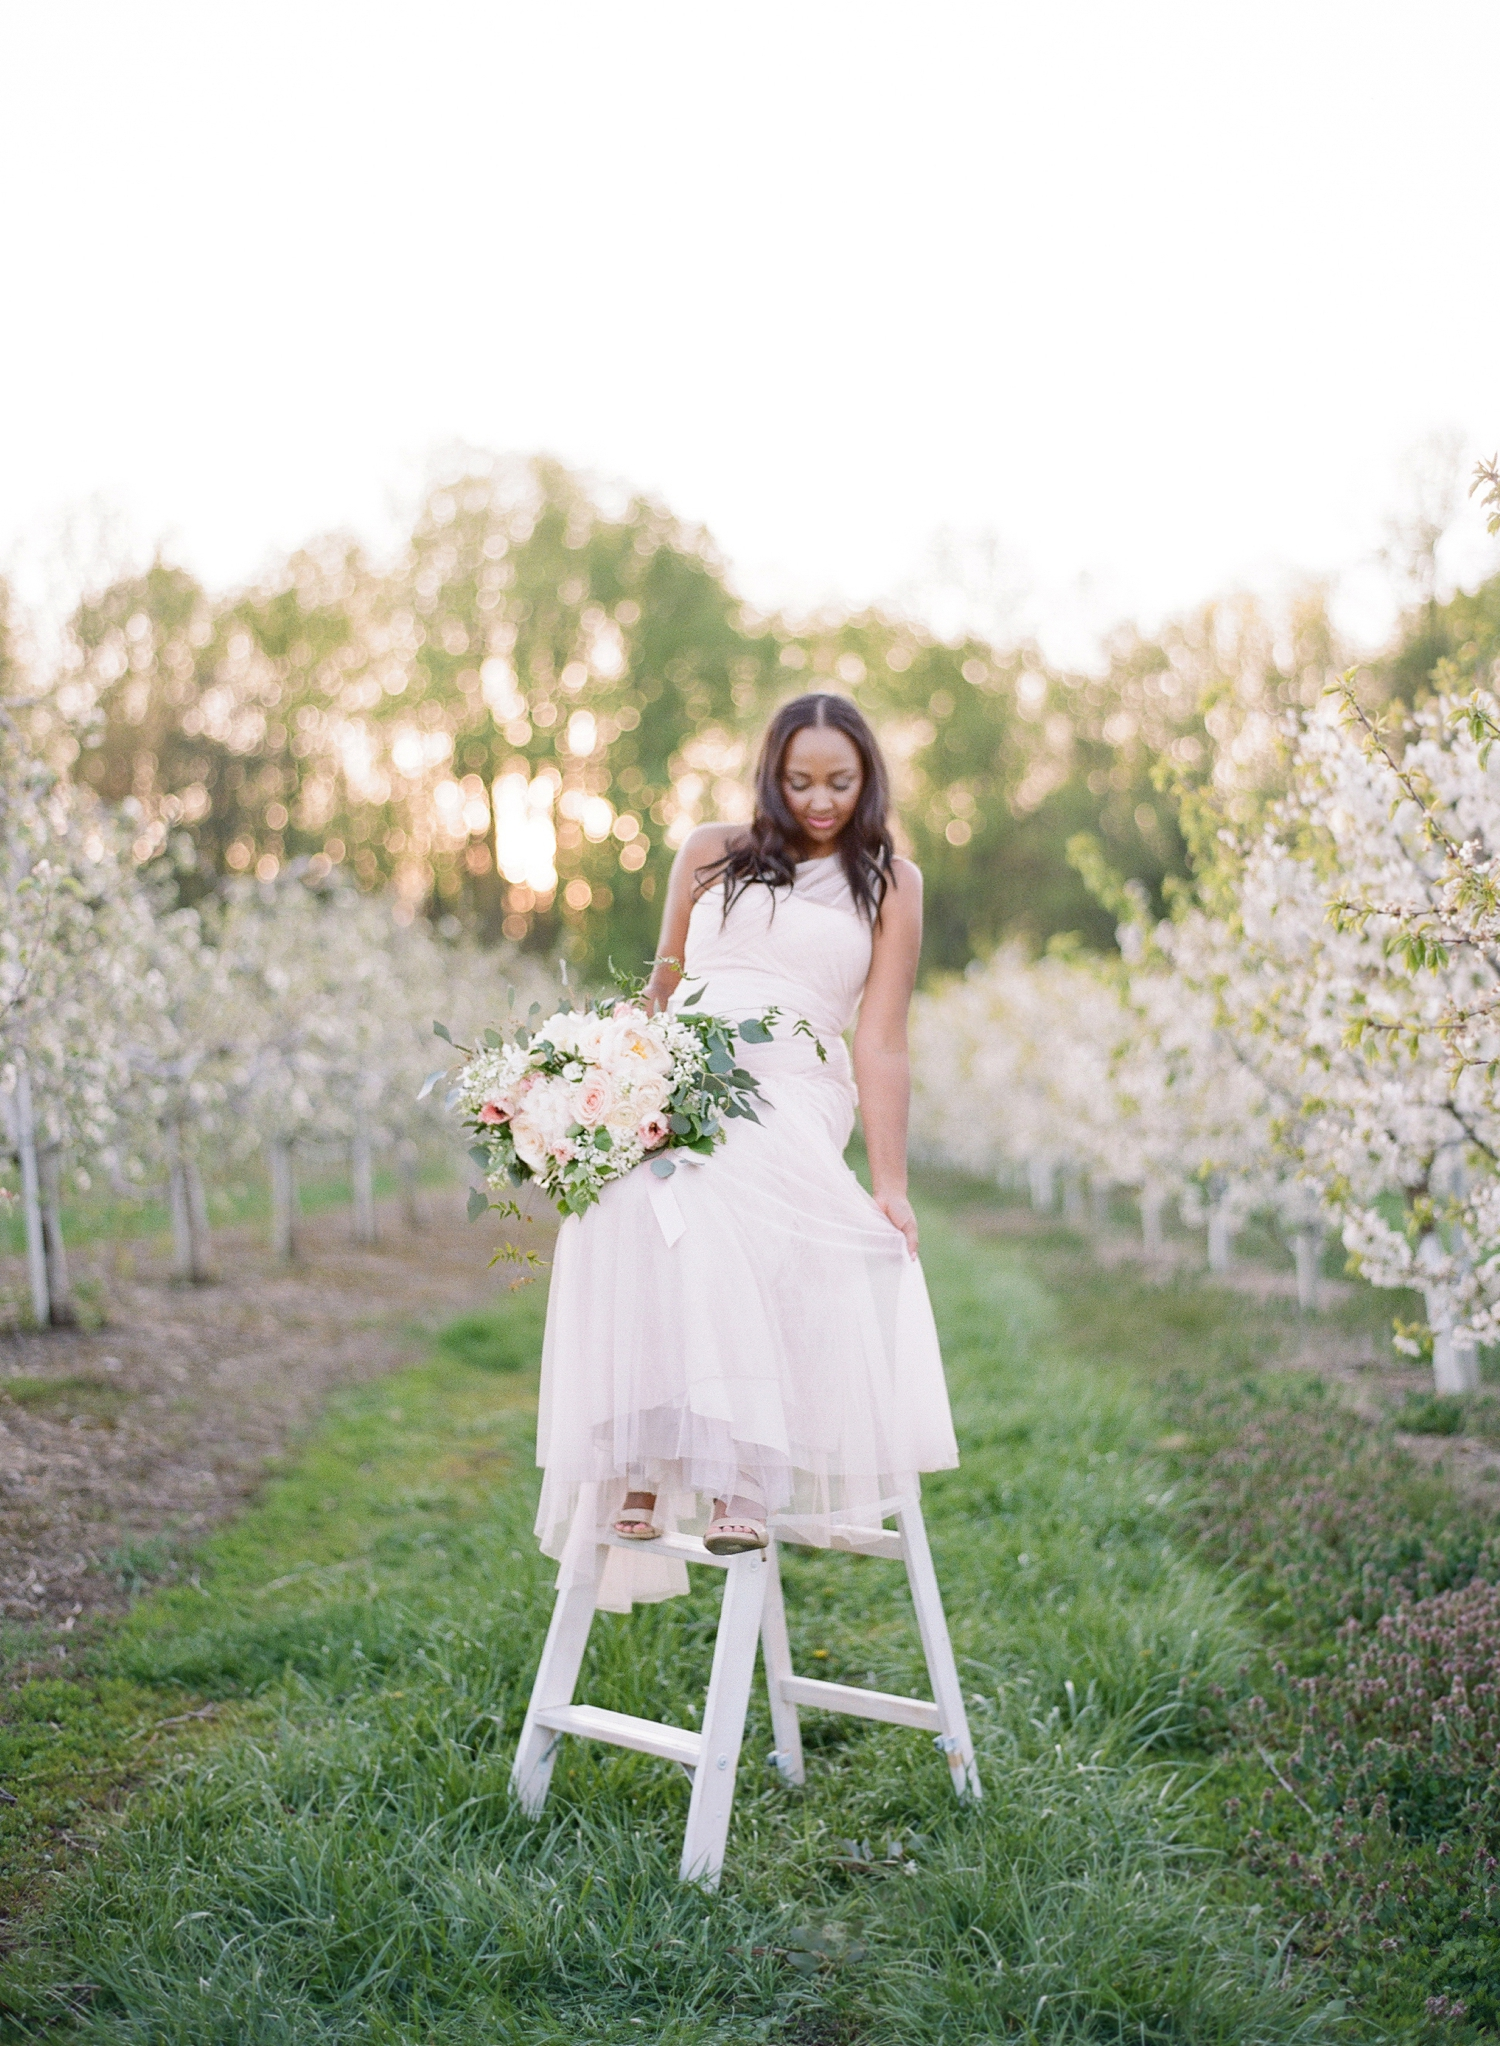 orchard bridal inspiration on film